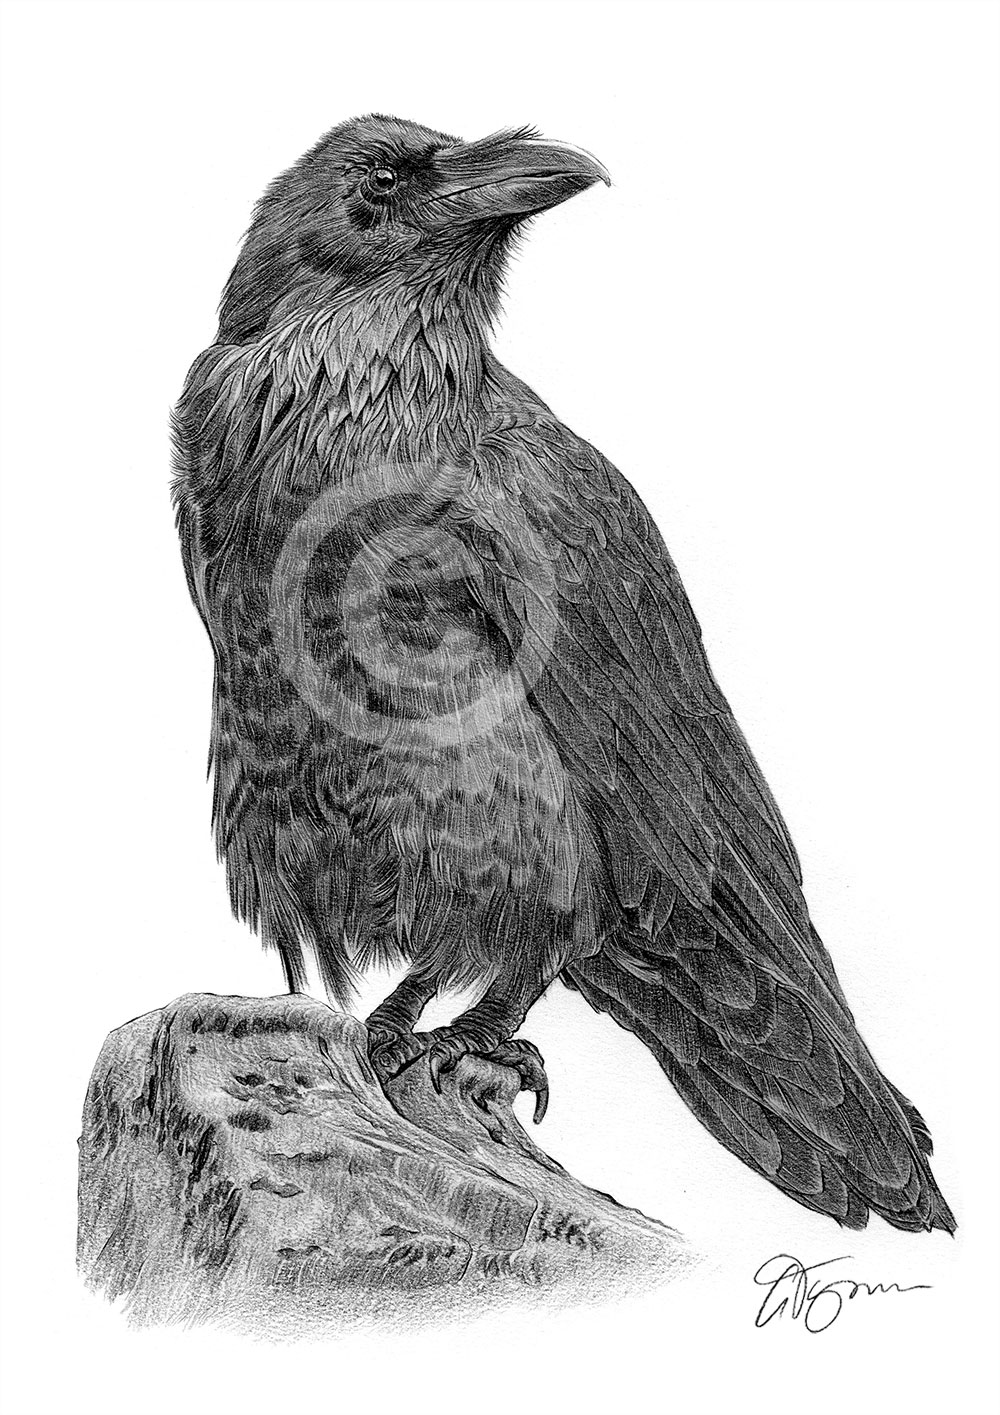 Raven pencil drawing by artist Gary Tymon